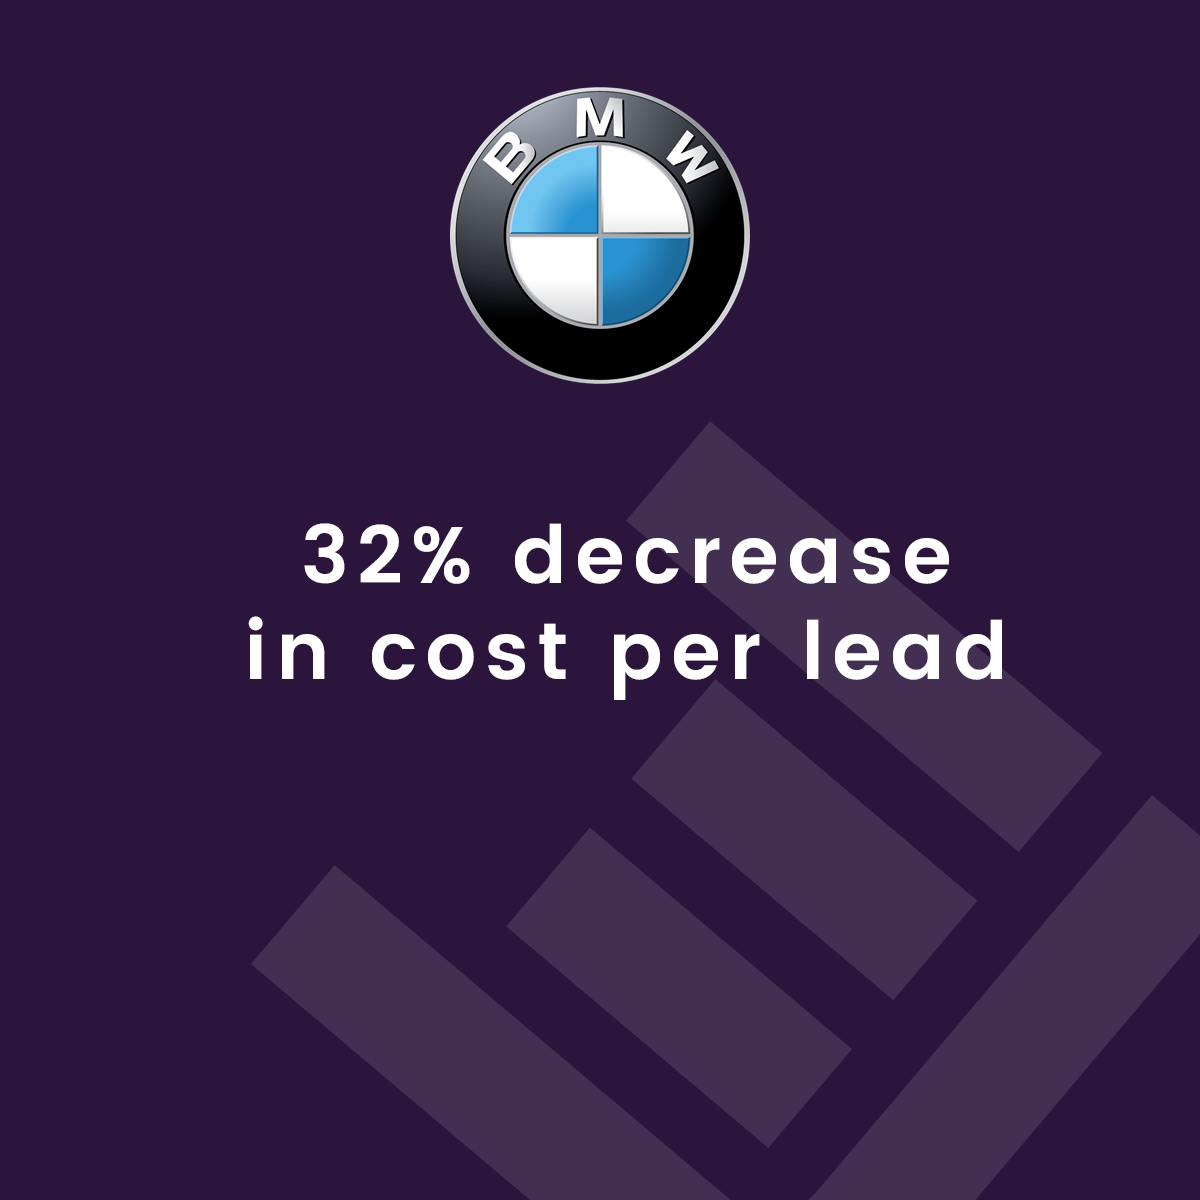 BMW Cost per lead decrease.png